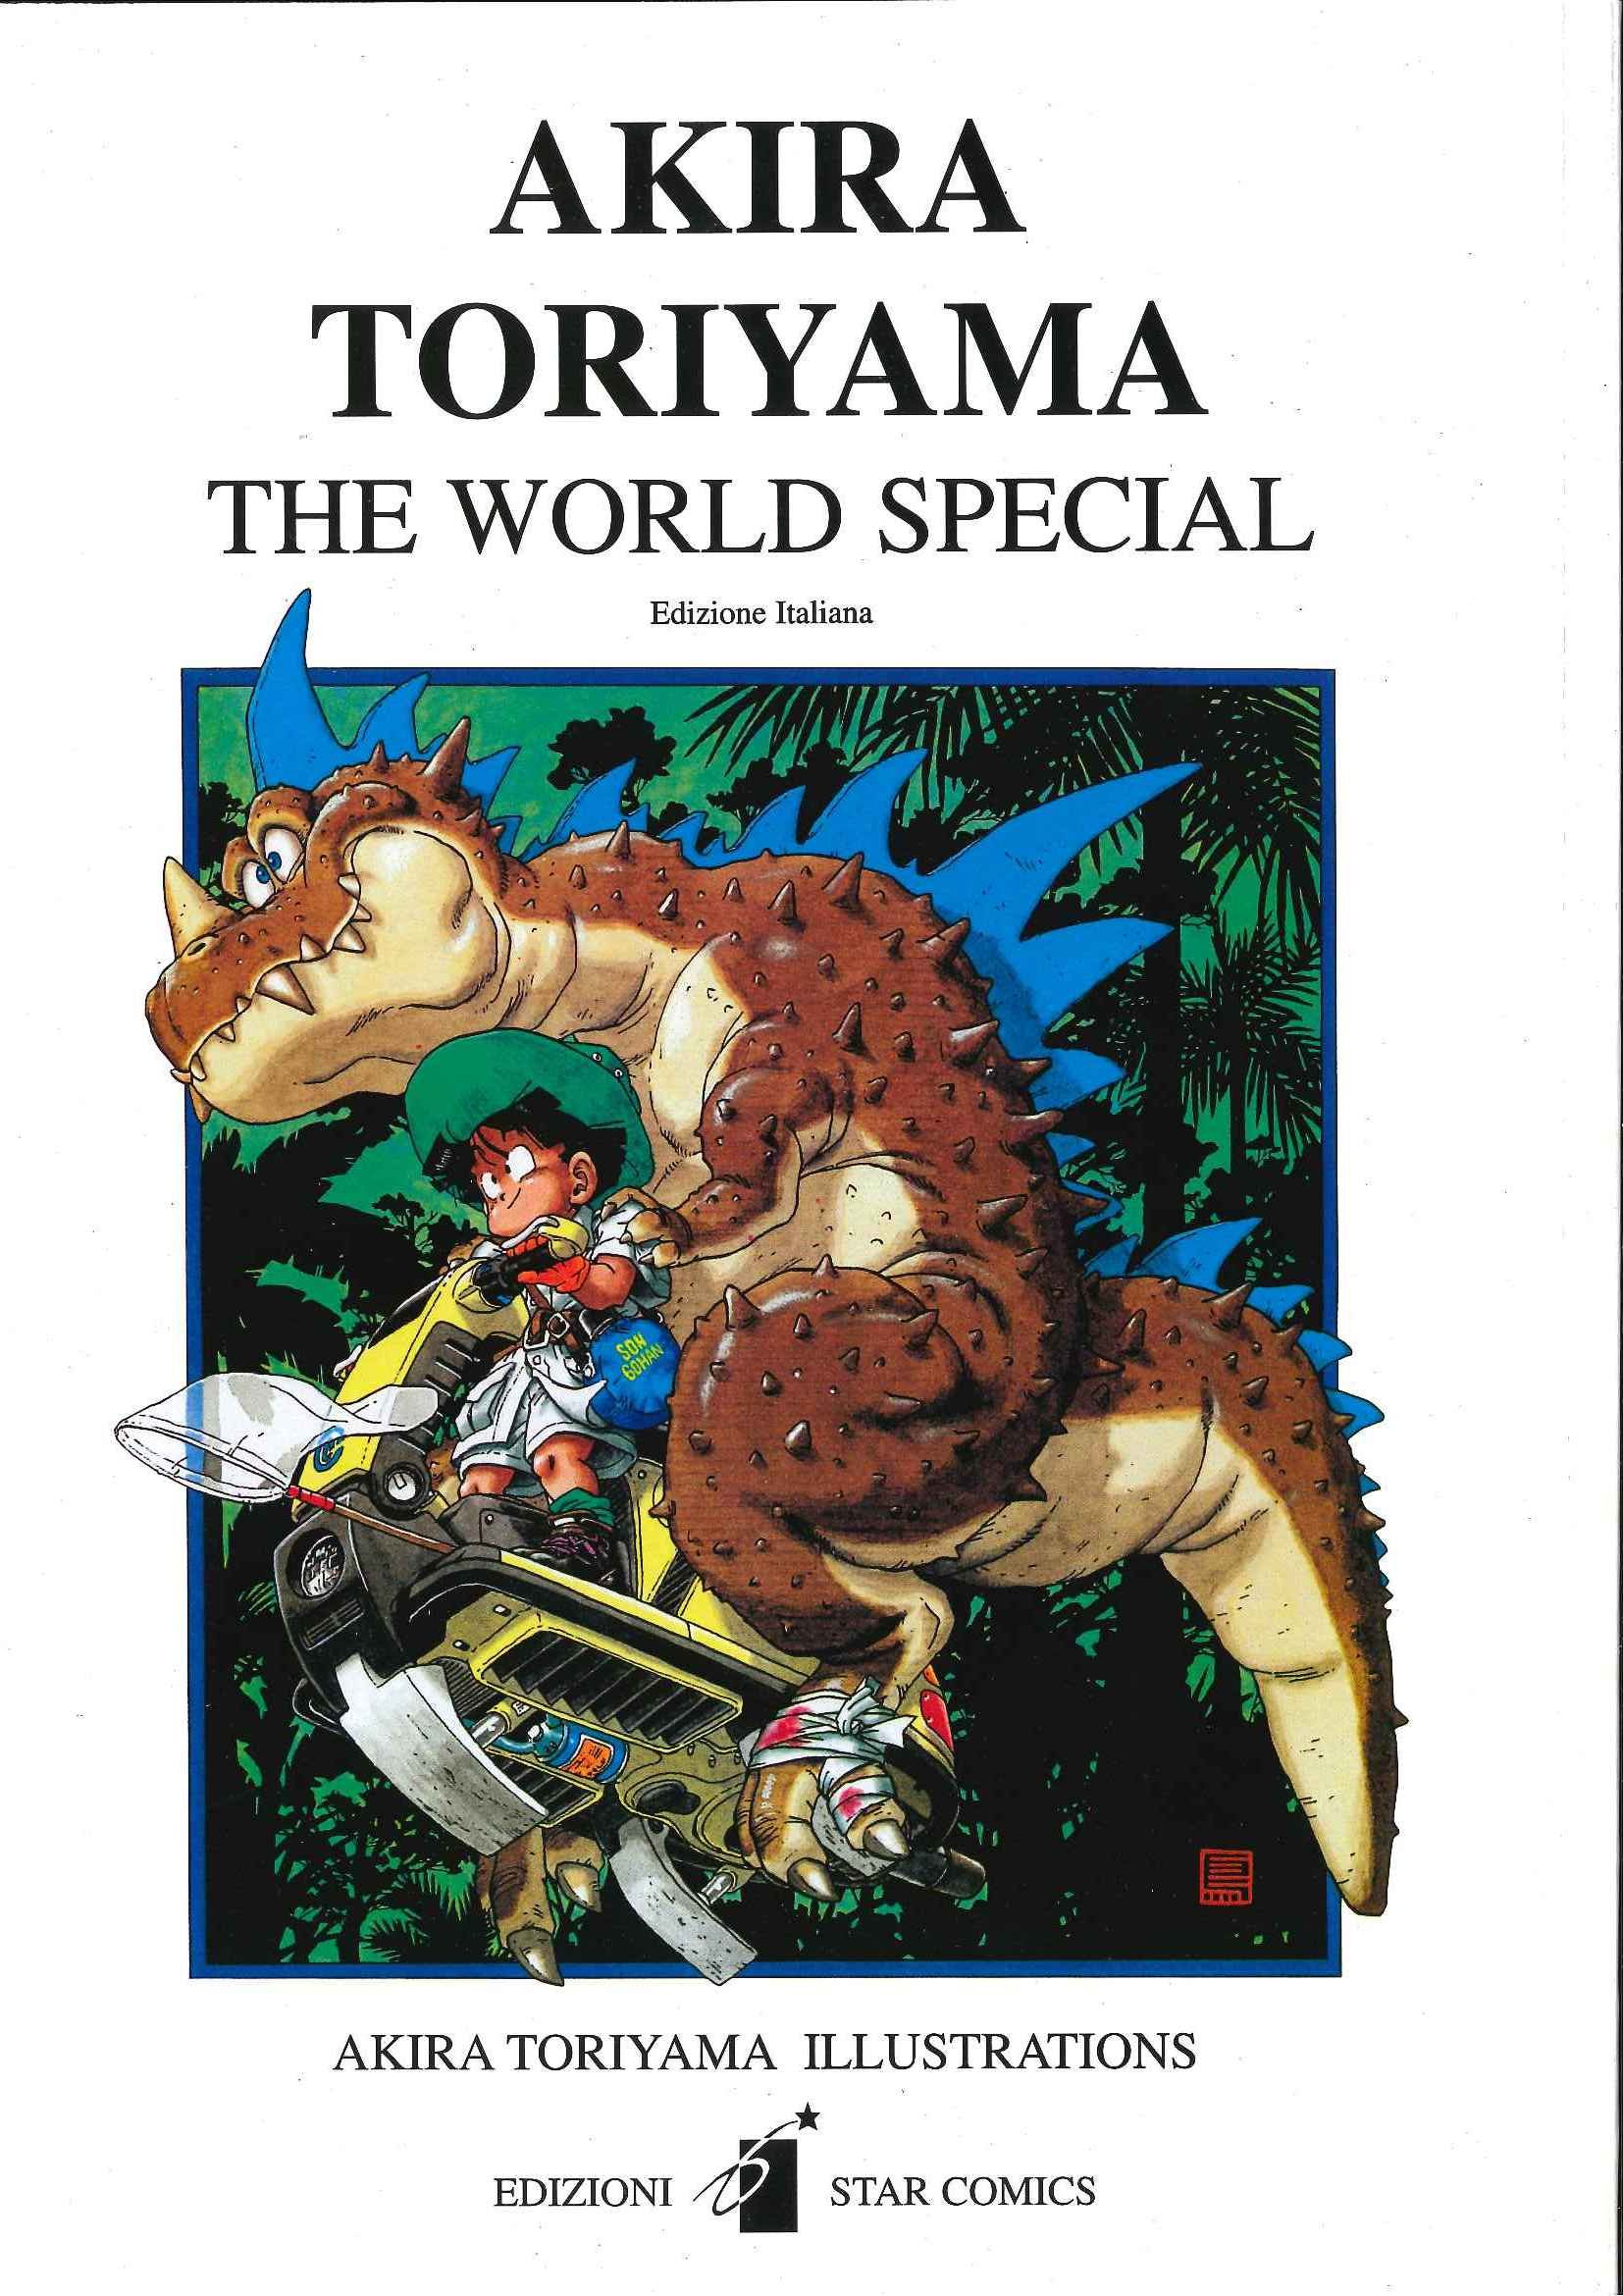 Akira Toriyama the world special: Amazon.co.uk: Akira Toriyama:  9788822601476: Books